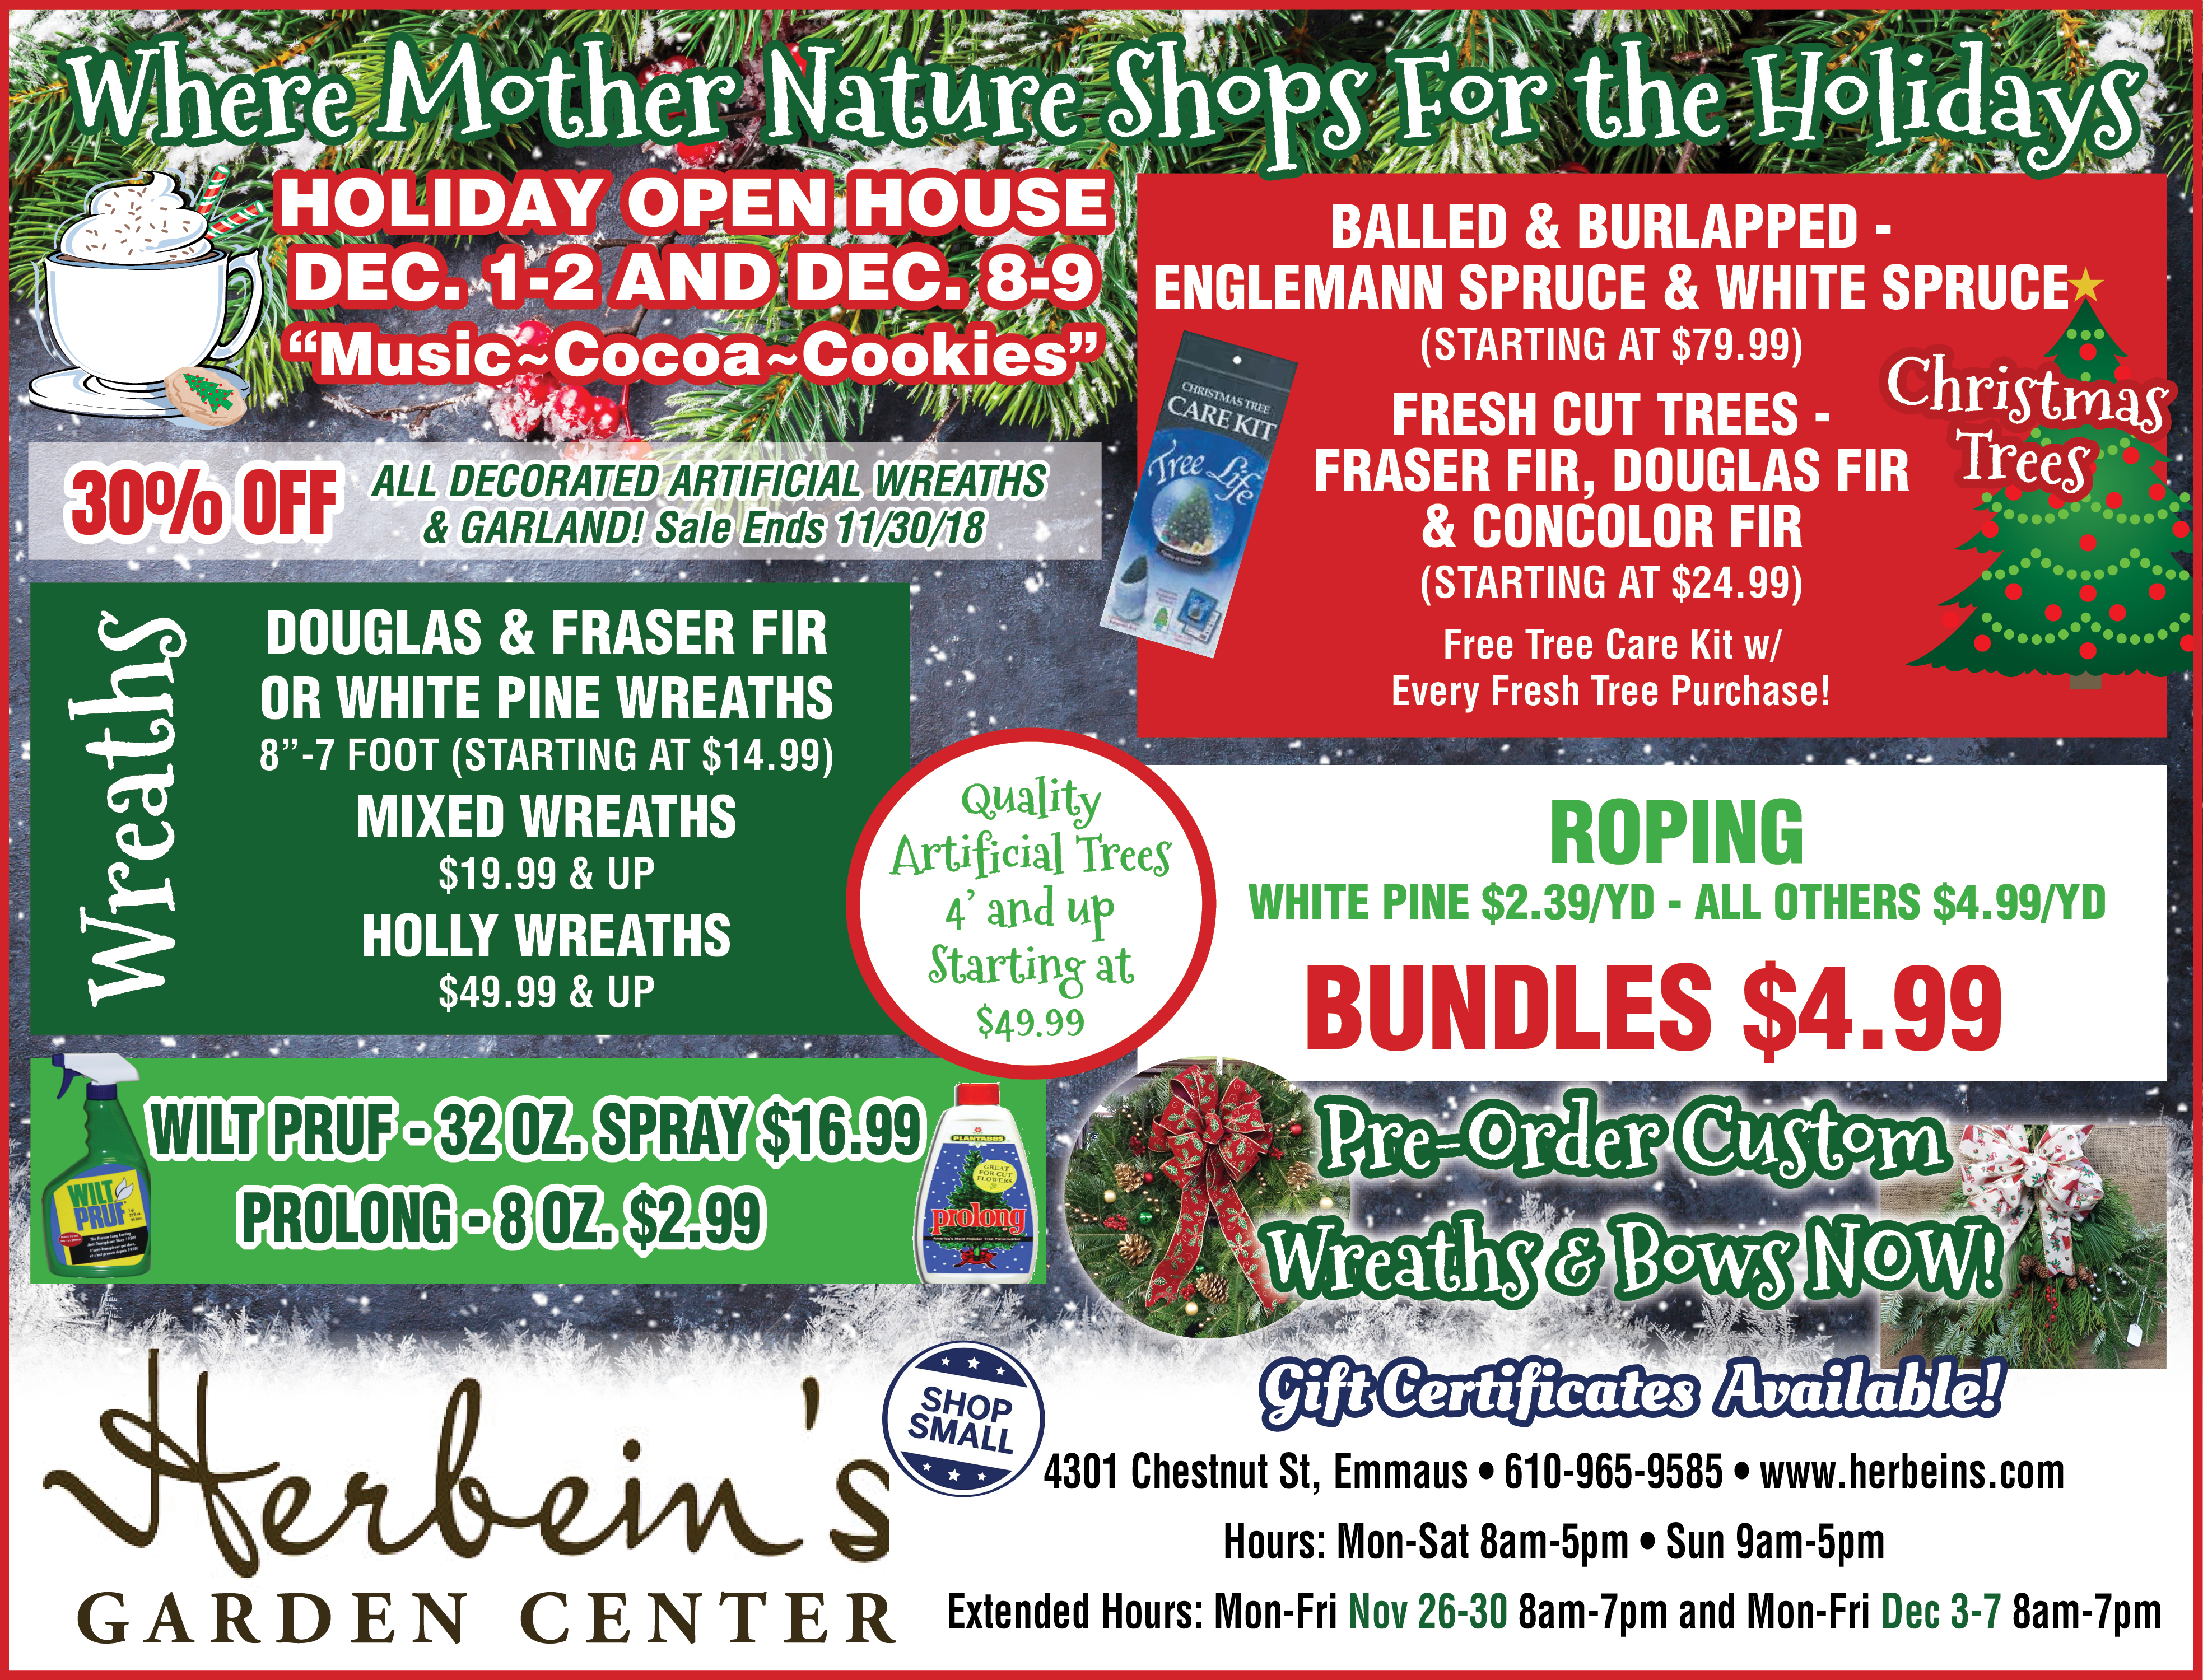 Herbeins Garden Center Ad for Week of 11/20-11/27/2018